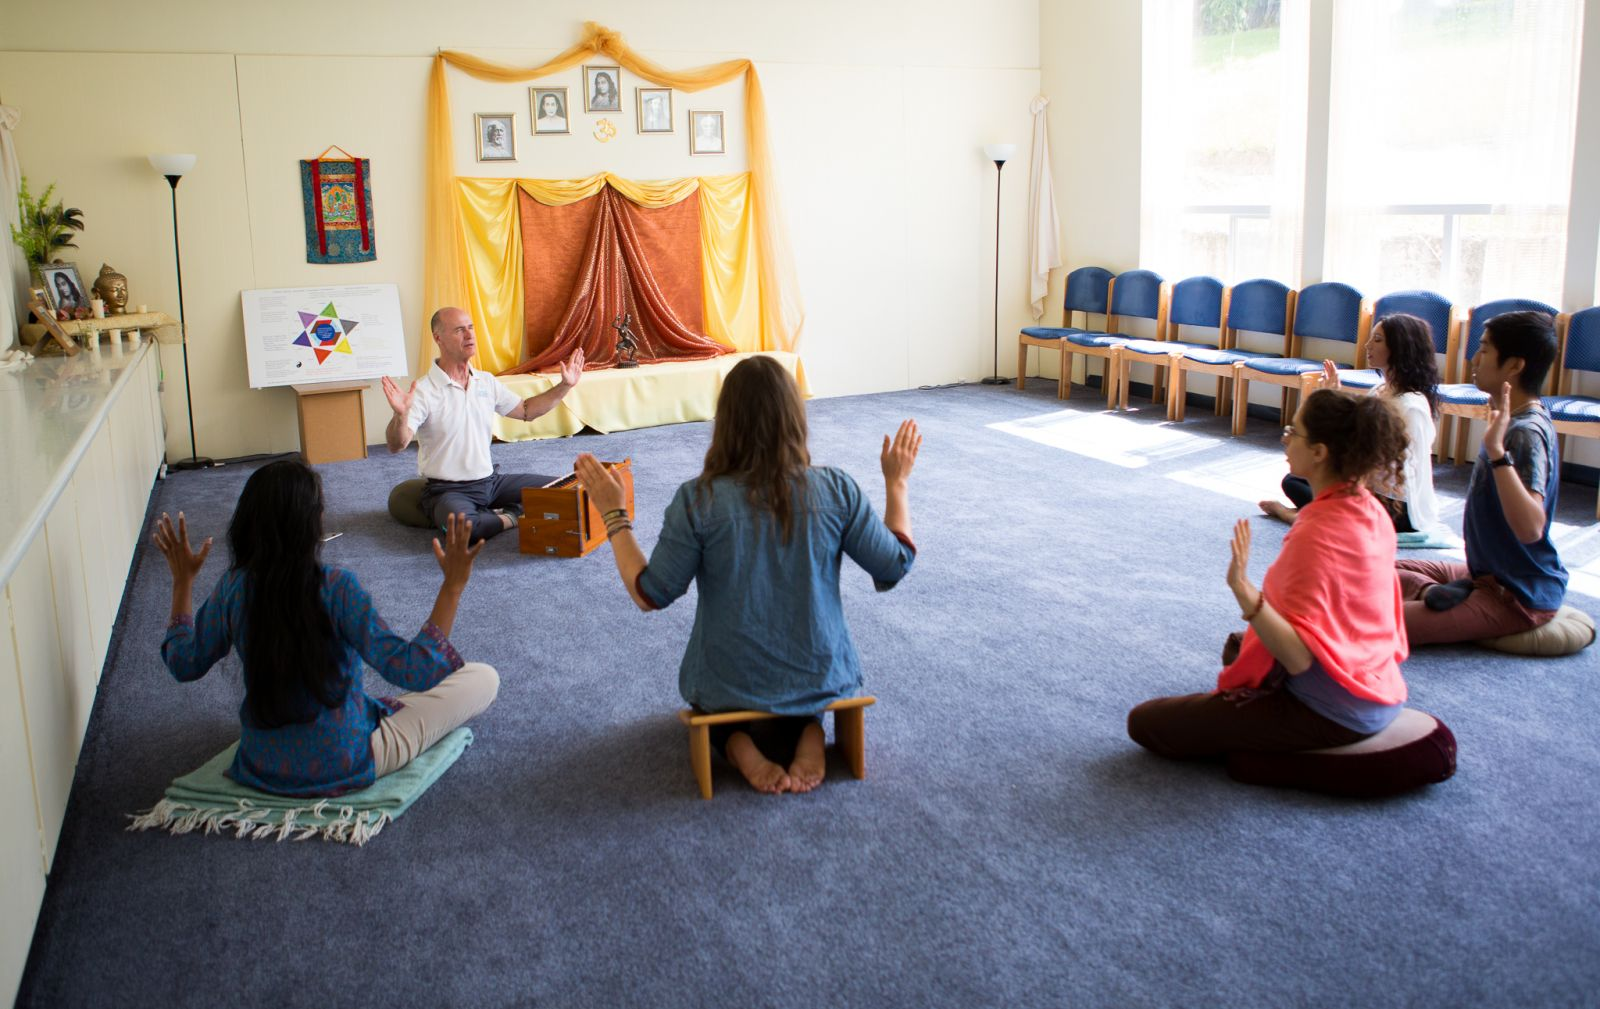 Frredom from Pain meditation class Aumkara leading sharing AUM chanting with Hands upraised